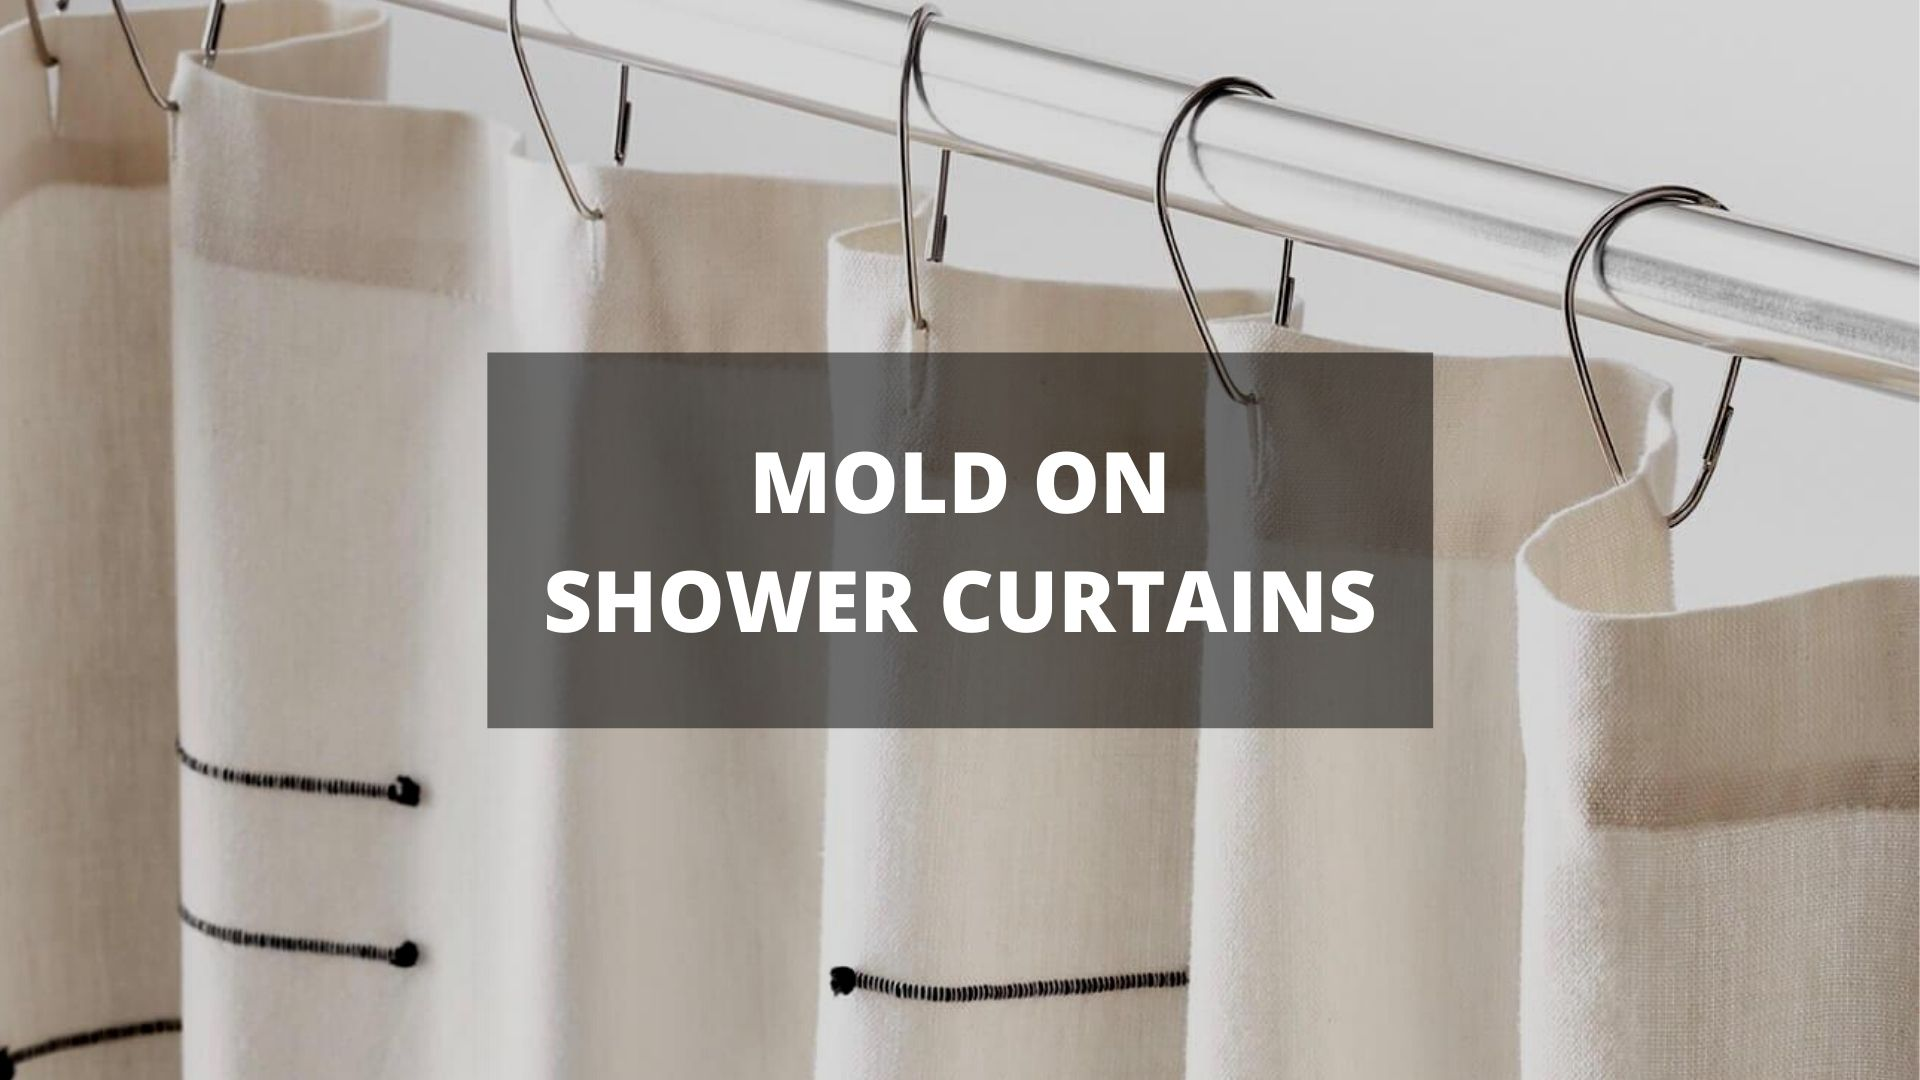 How To Remove Mold From Shower Curtains   Mold Remediation